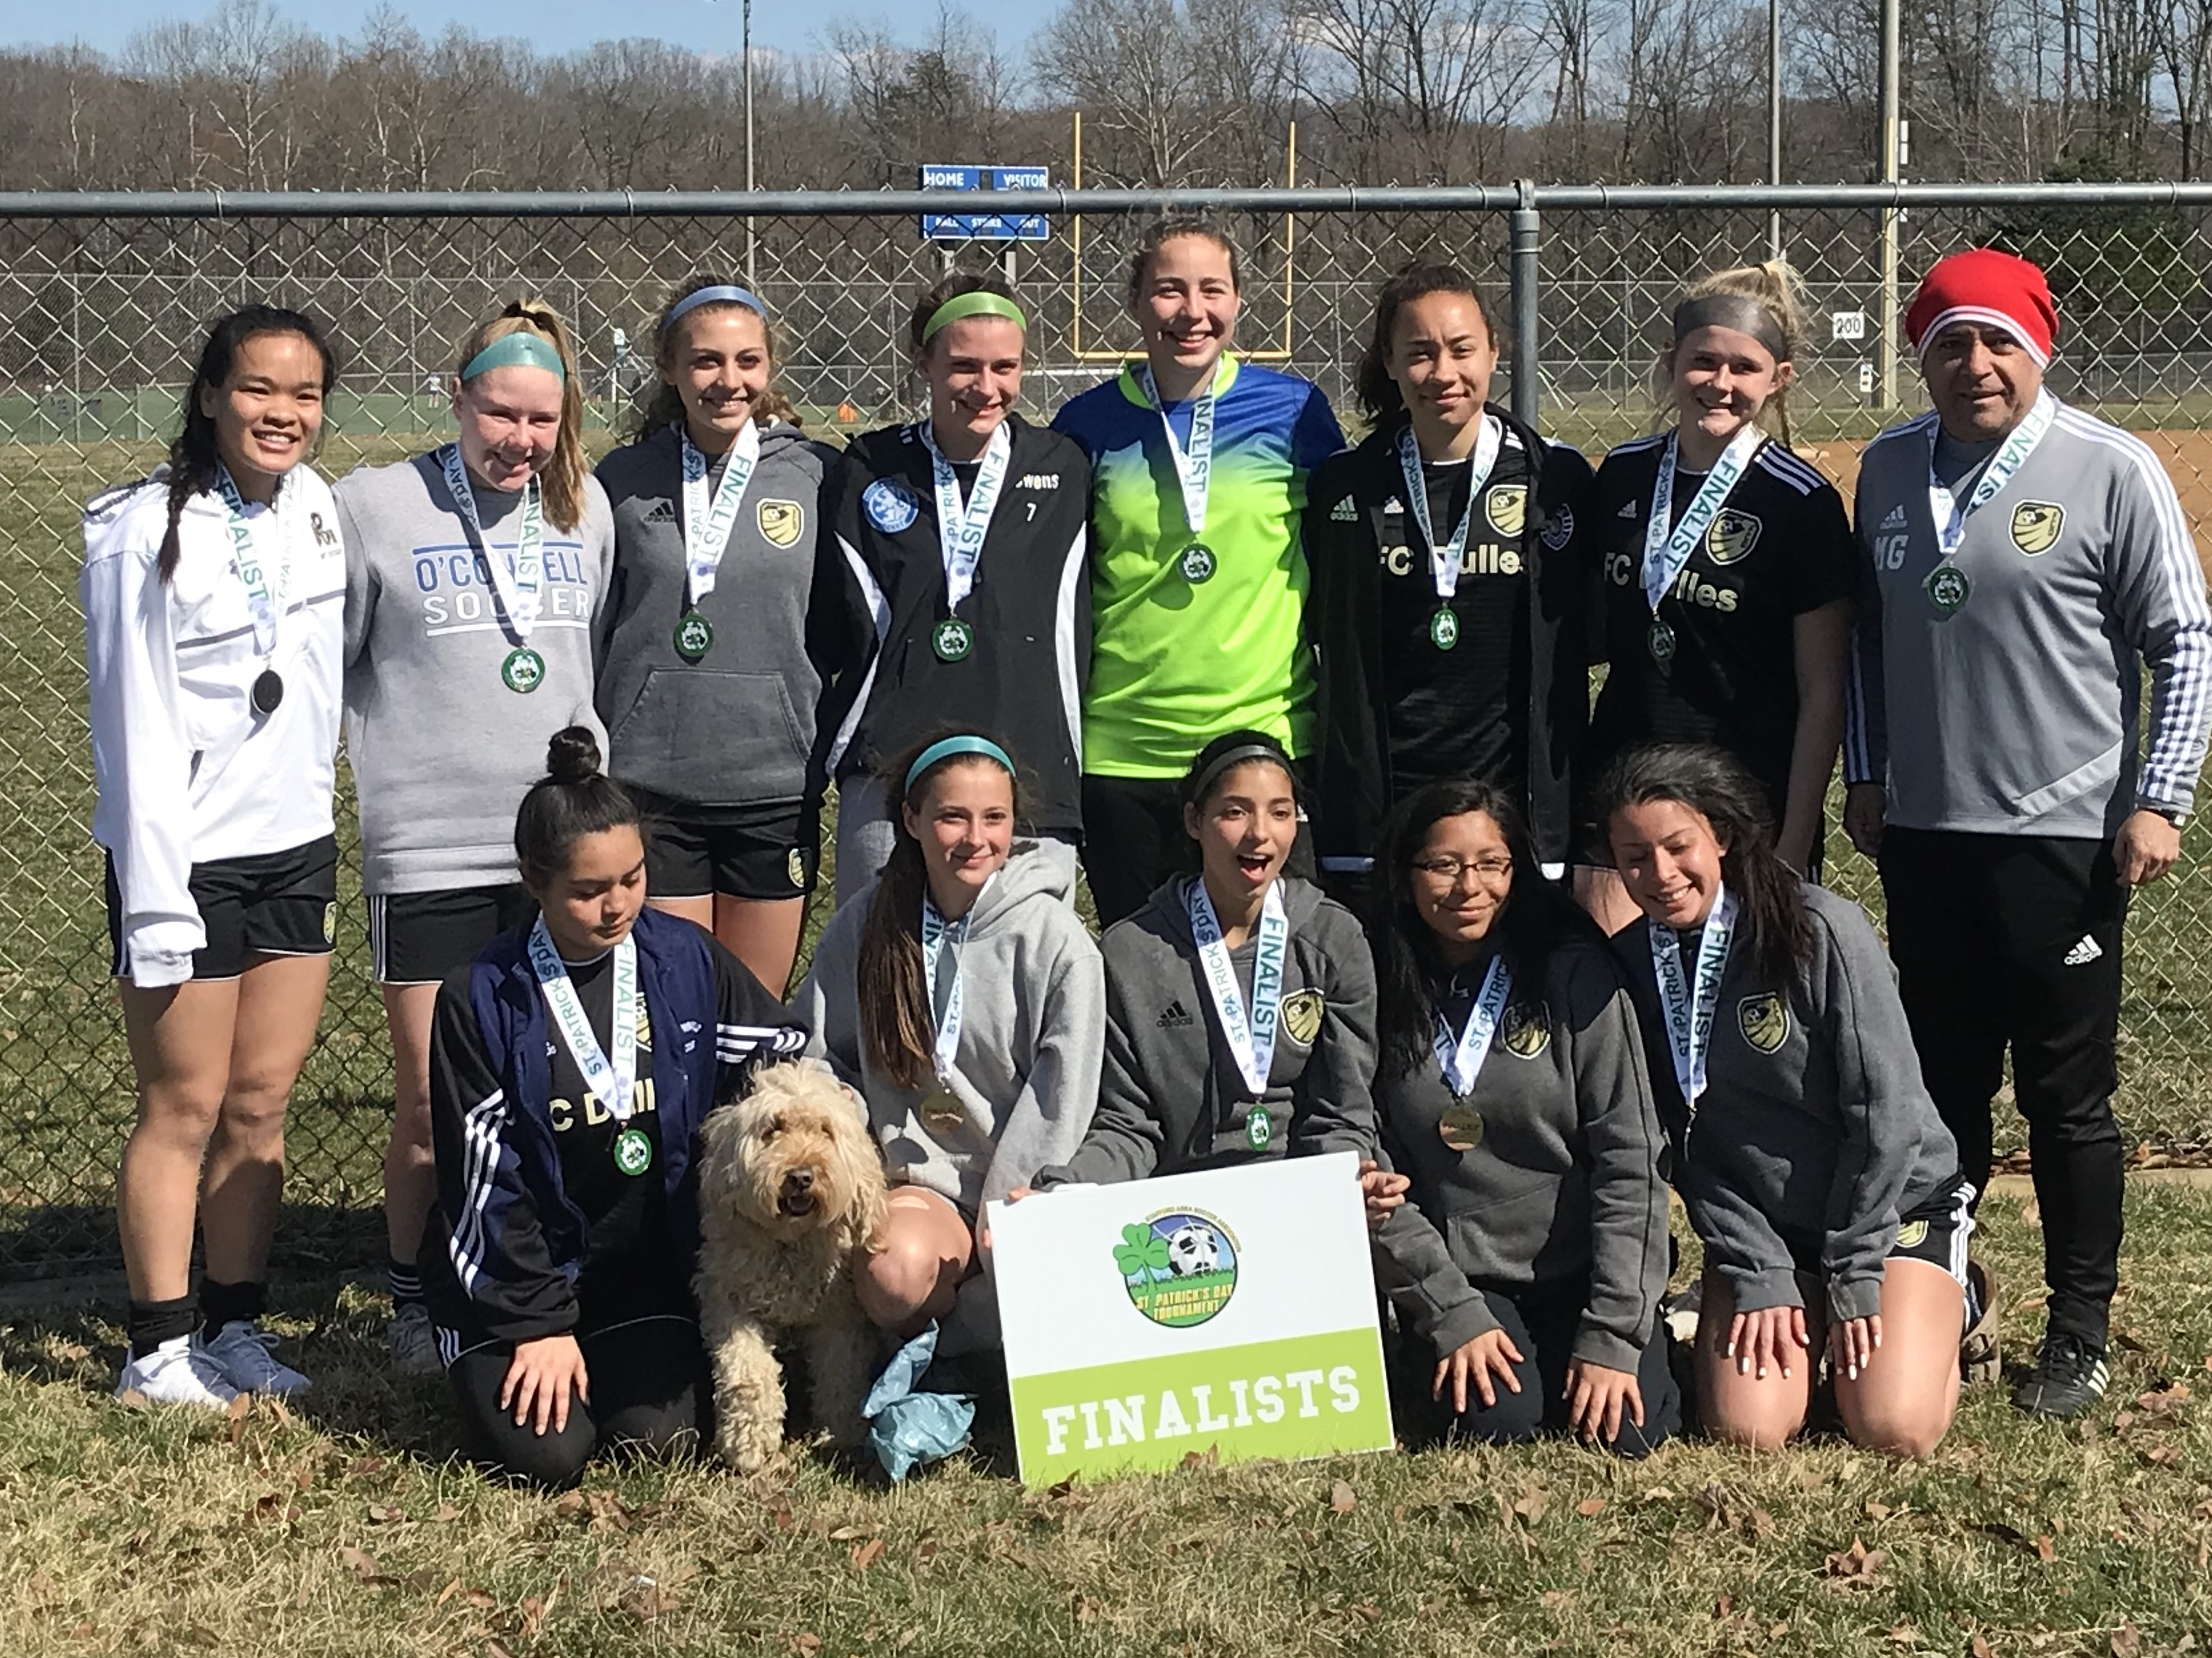 U16 Girls Finalists at St. Paddy's Day Tournament